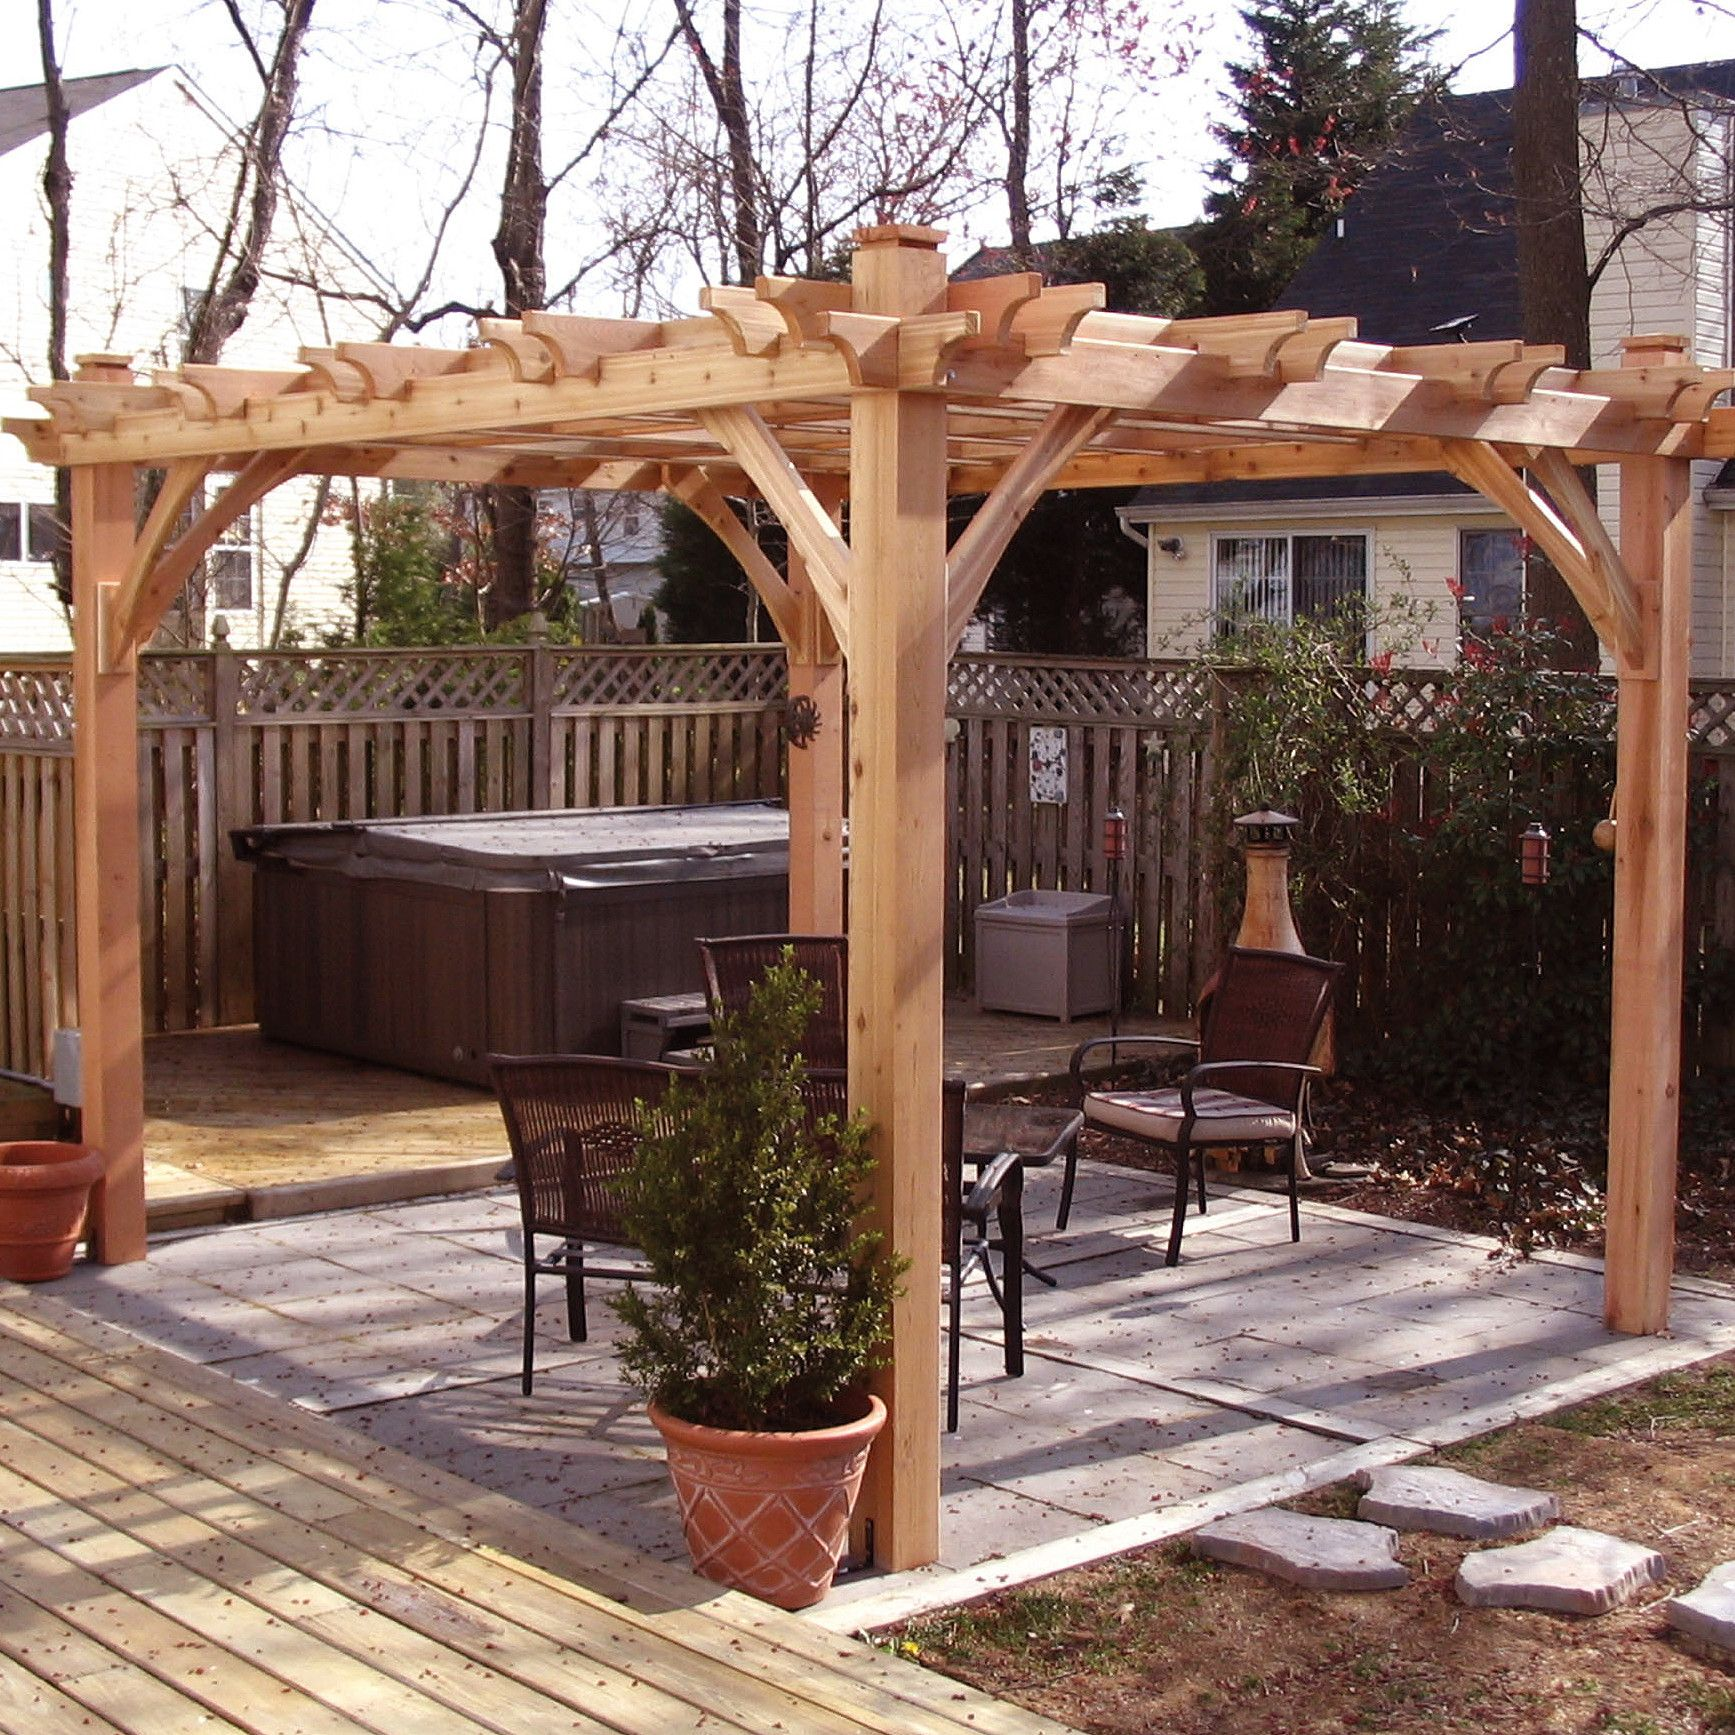 Breeze 8 Ft. W x 10 Ft. D Solid Wood Pergola Outdoor